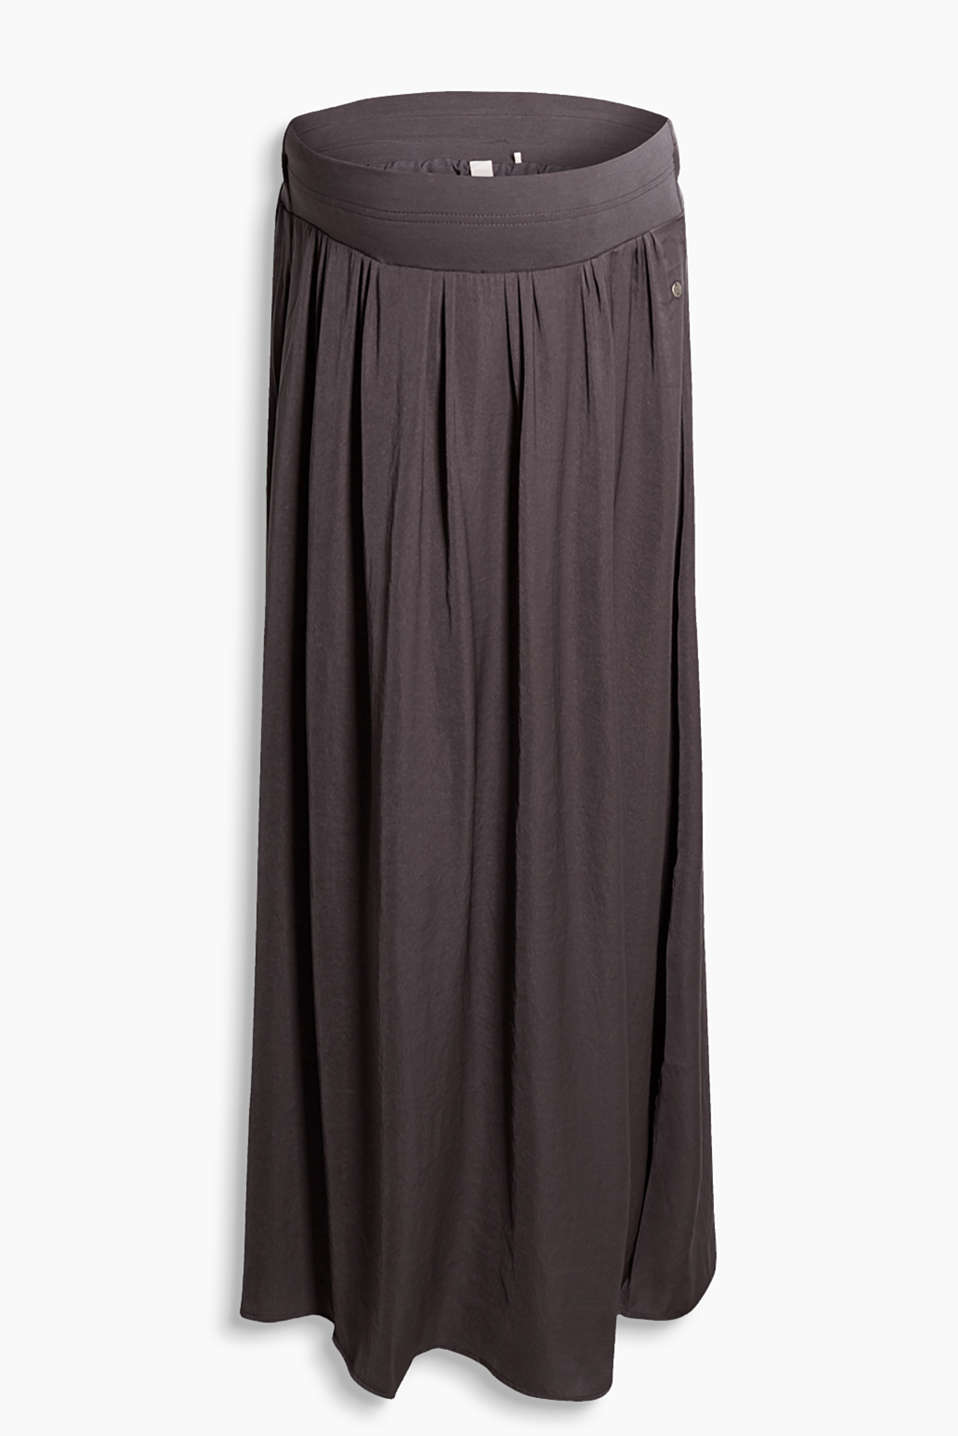 Fluid maxi skirt with high side slits and a supportive under-bump waistband with a beautiful swirl